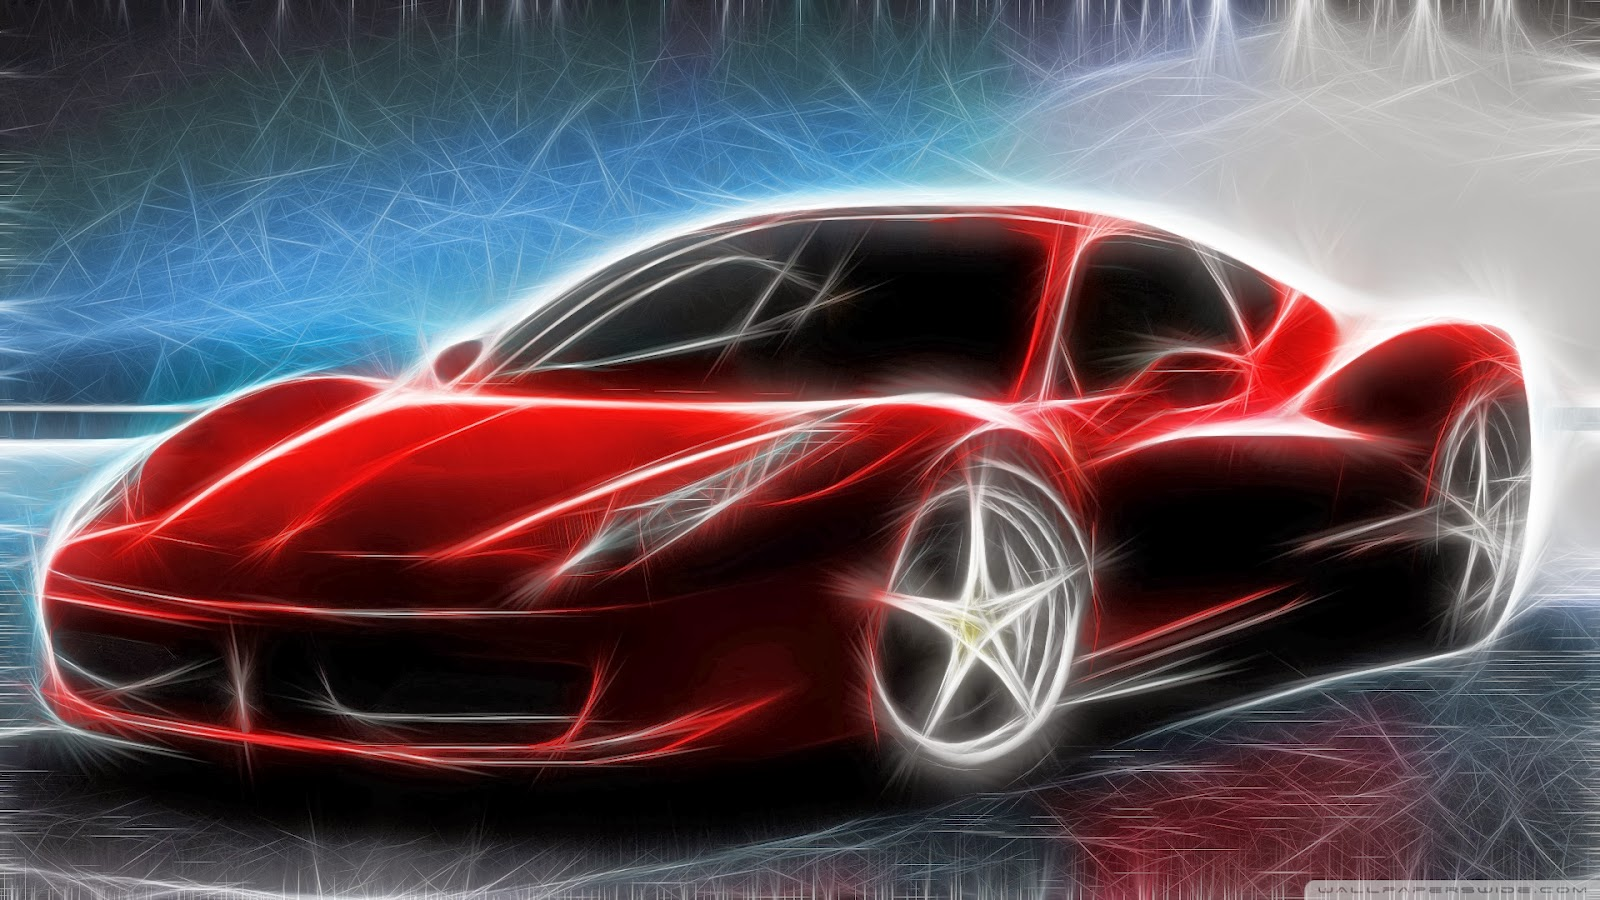 Wallpaper Ferrari HD Keren  Deloiz Wallpaper